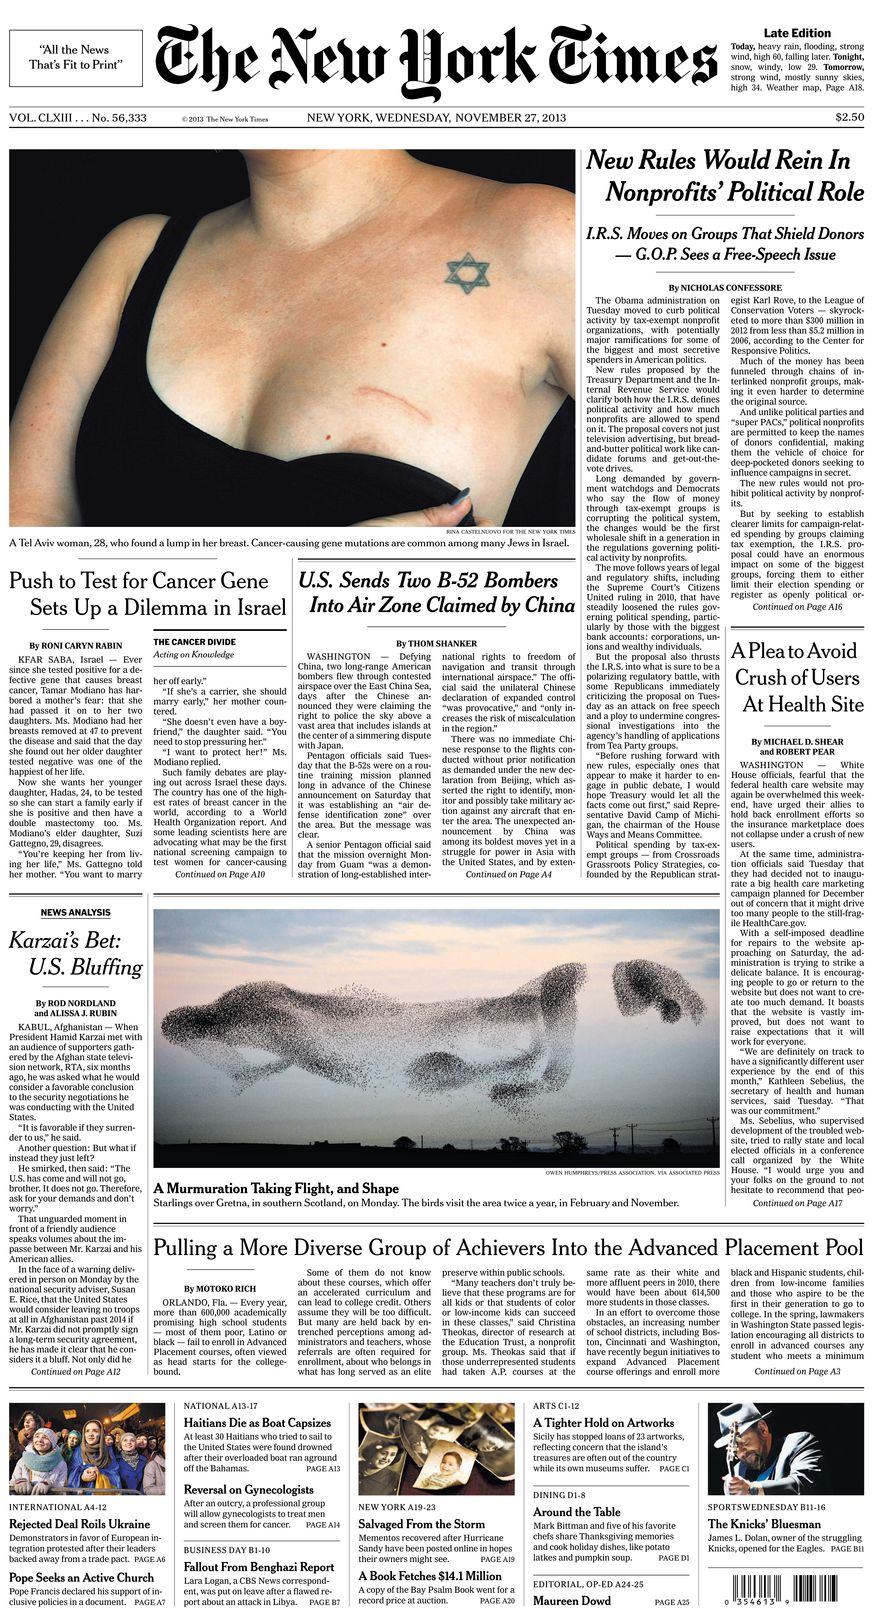 New York Times front page for November 27, 2013.